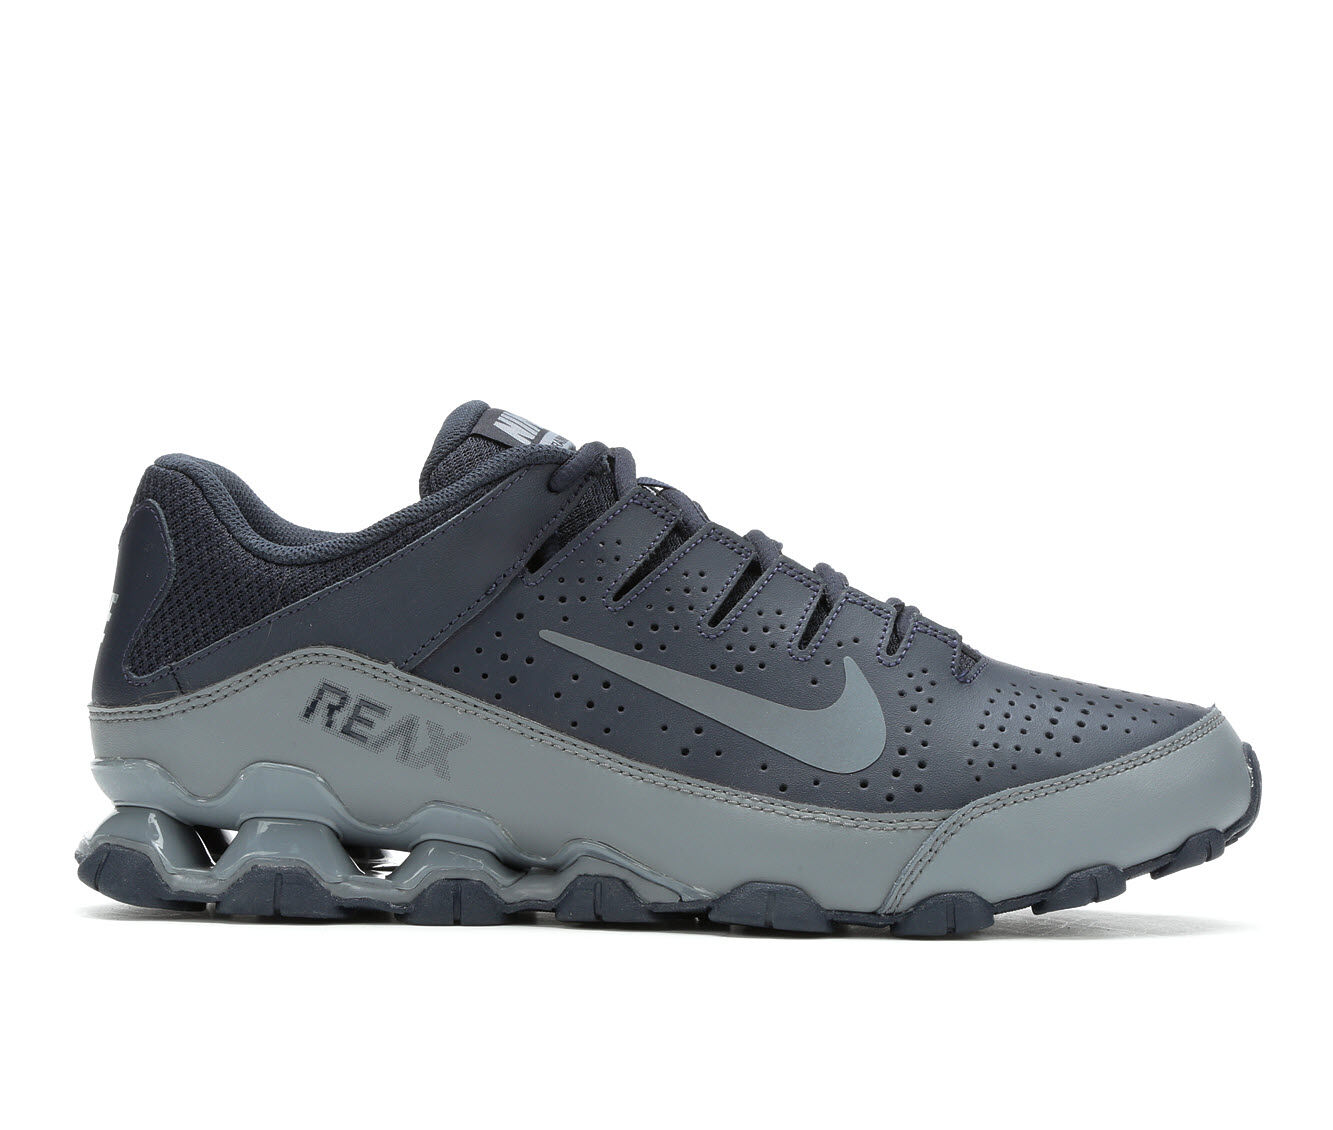 Cheap Men's Nike Free TR FIT 5 Brthe Training Shoes